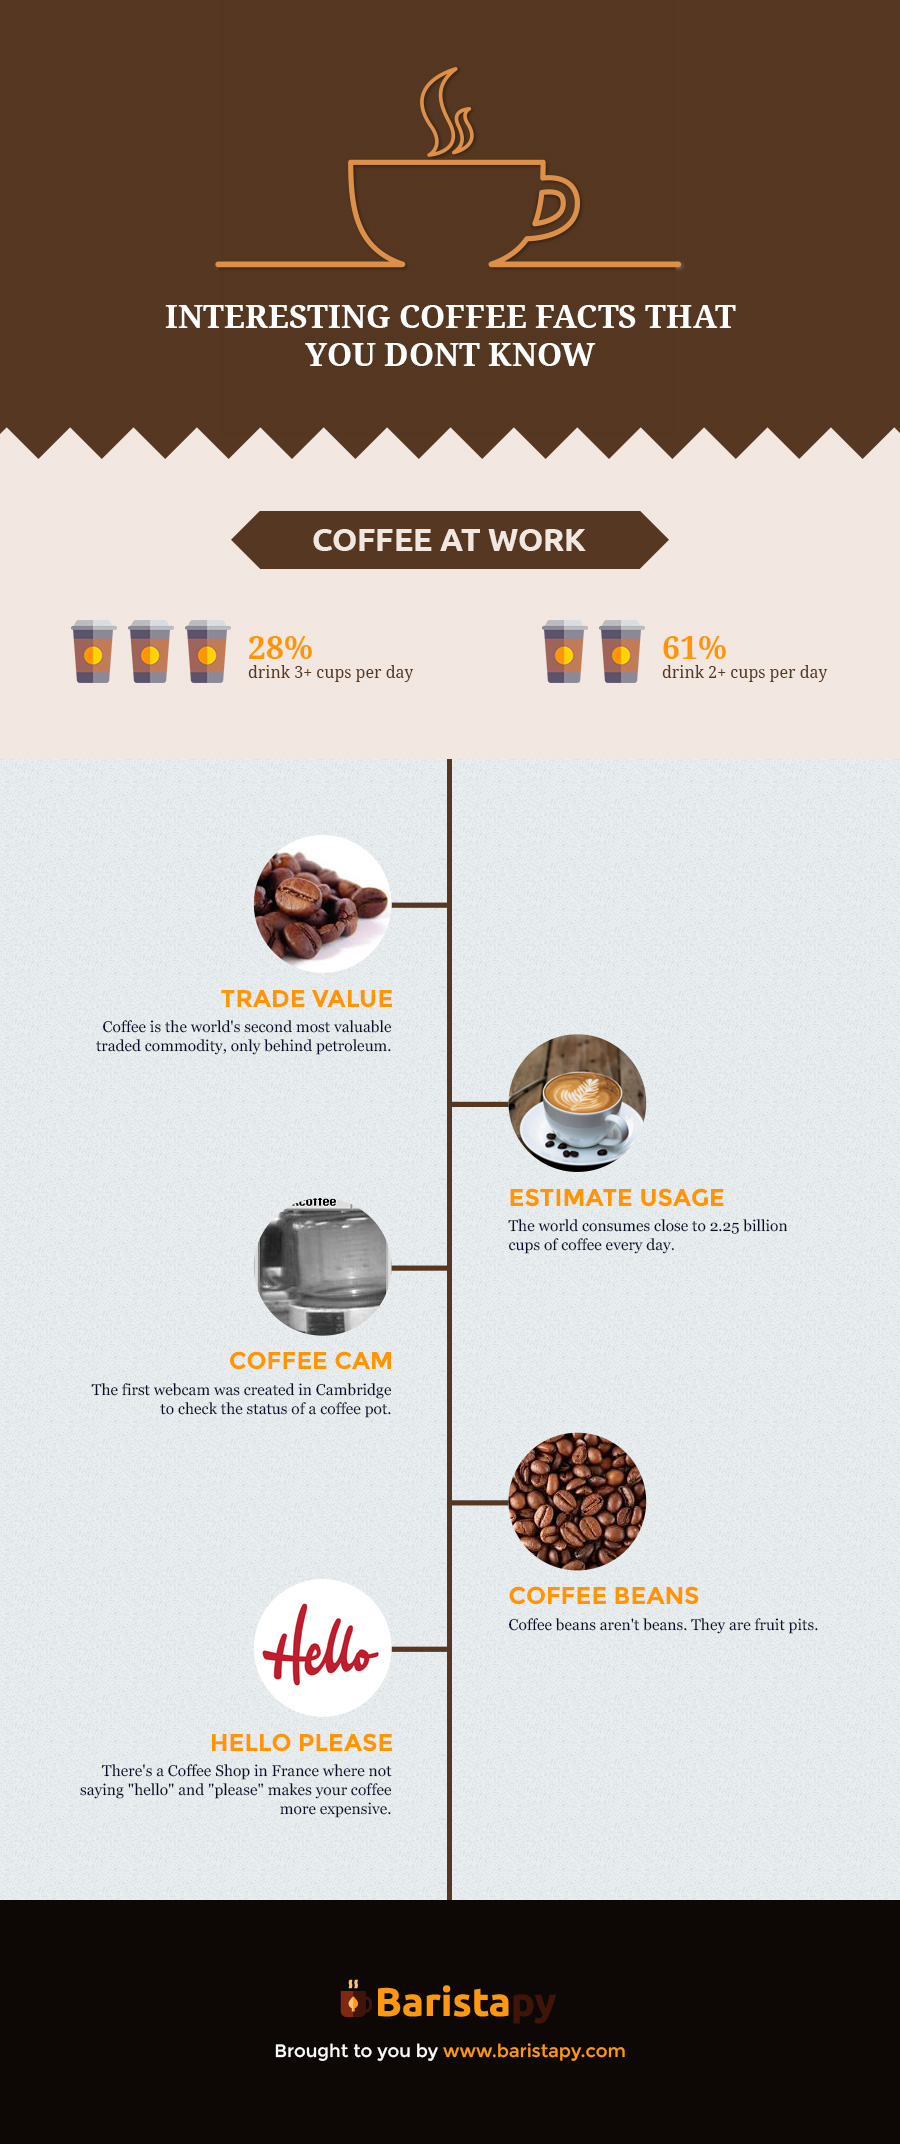 Milk frother infographic